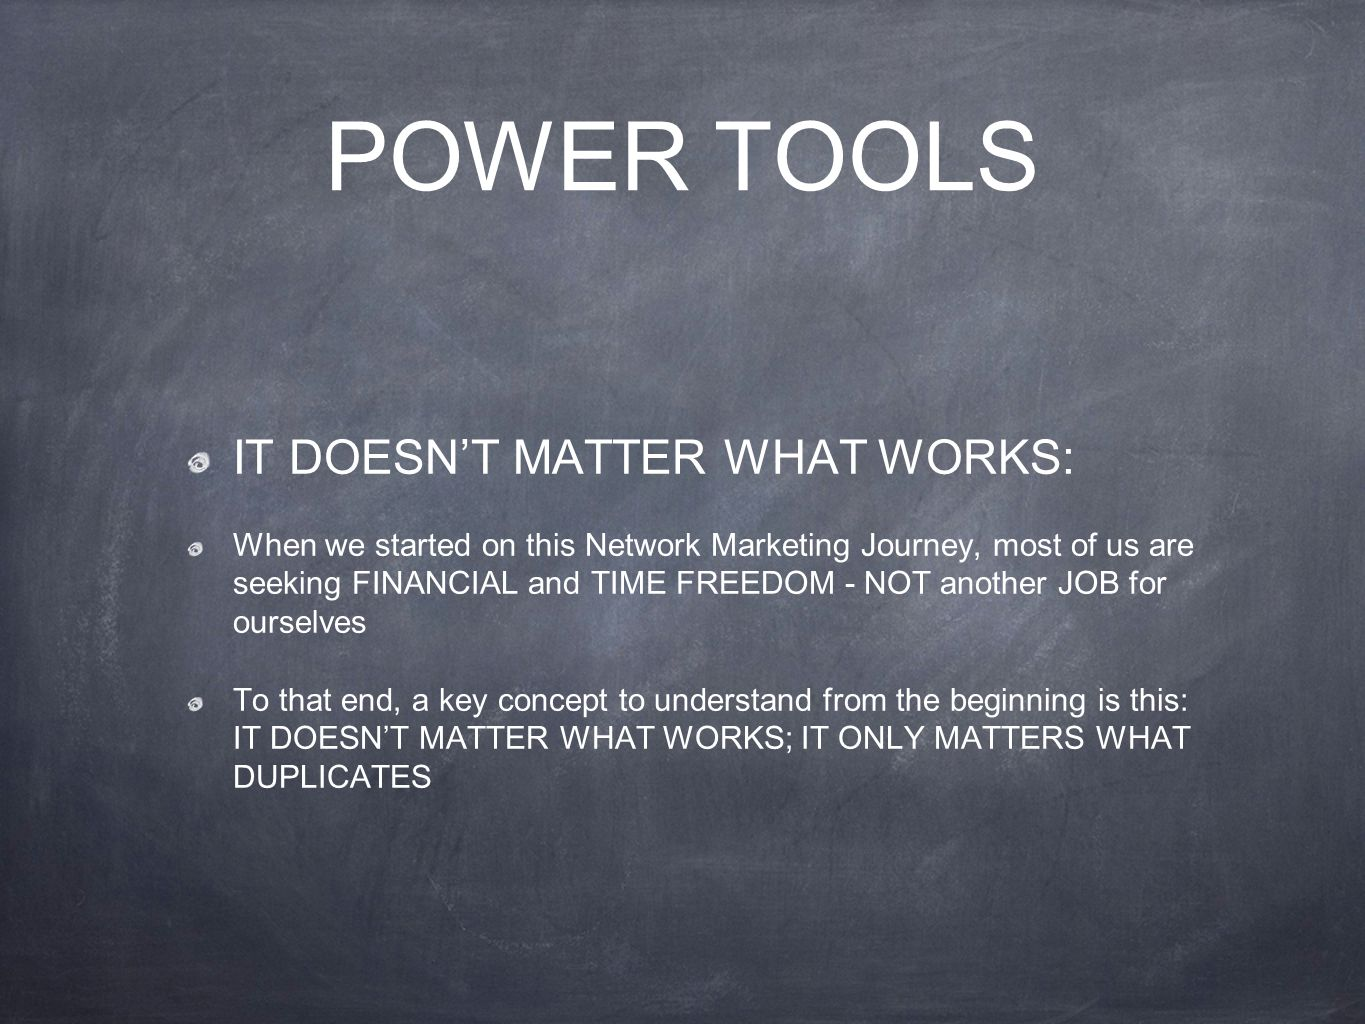 POWER TOOLS IT DOESN'T MATTER WHAT WORKS: